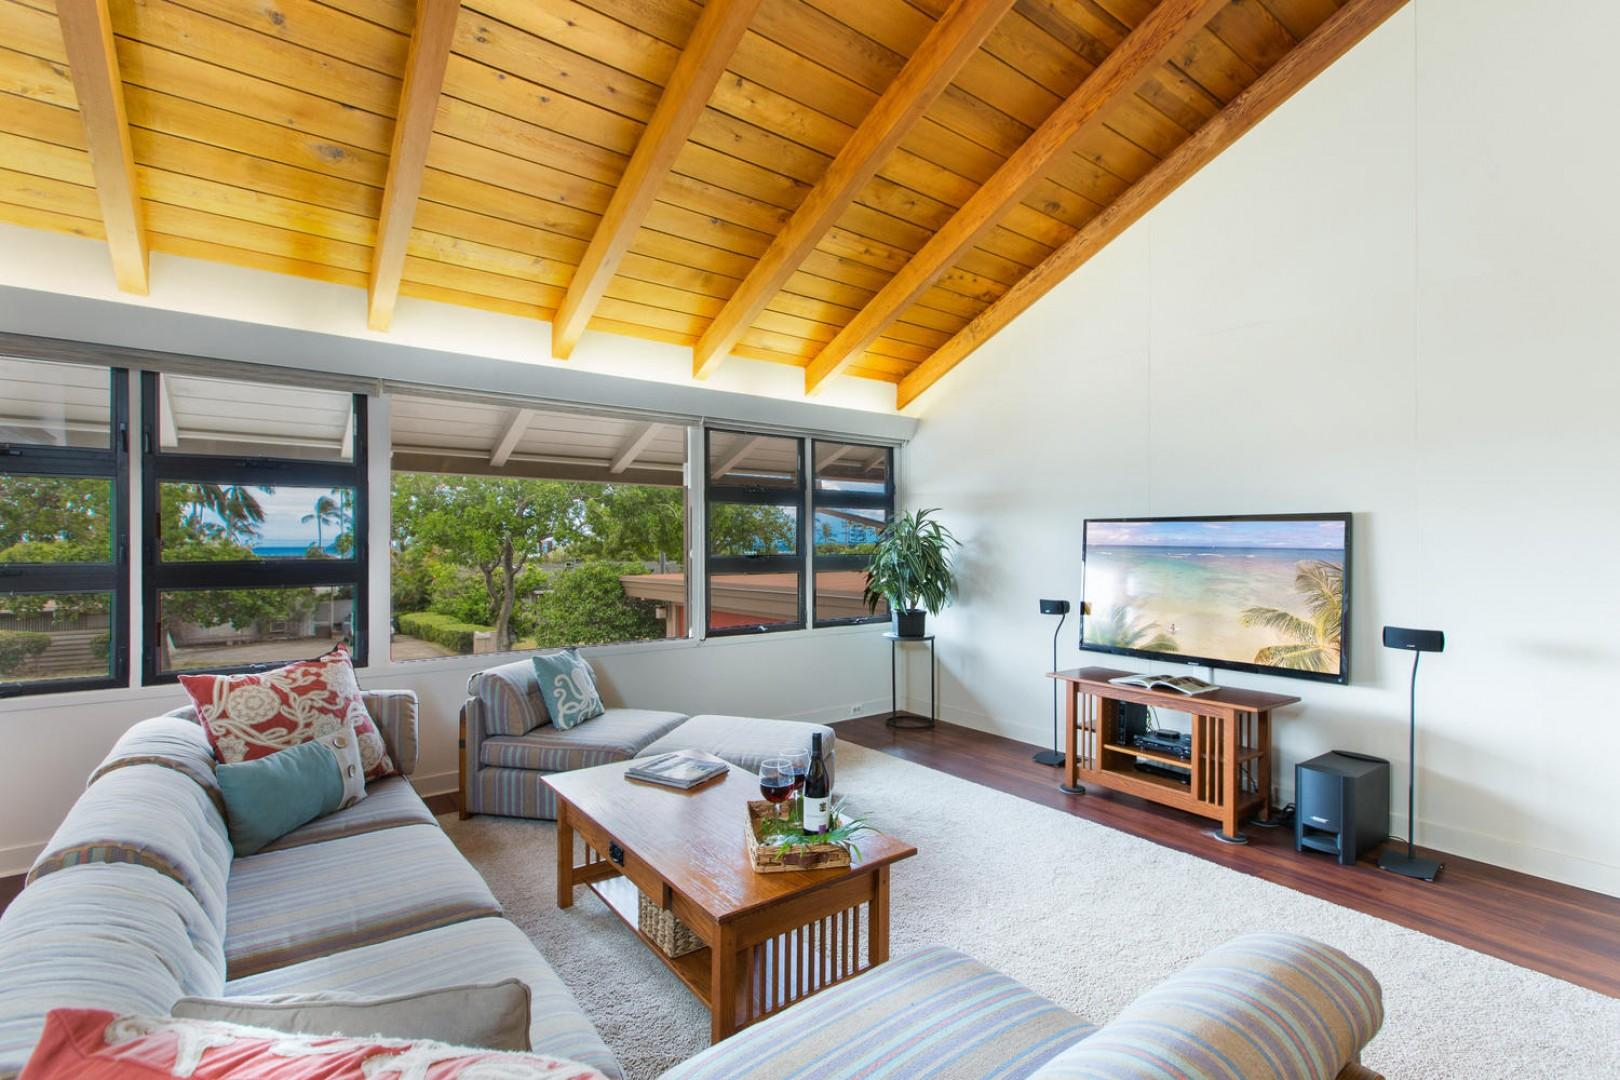 Large open-concept living room with peek-a-boo views of the ocean